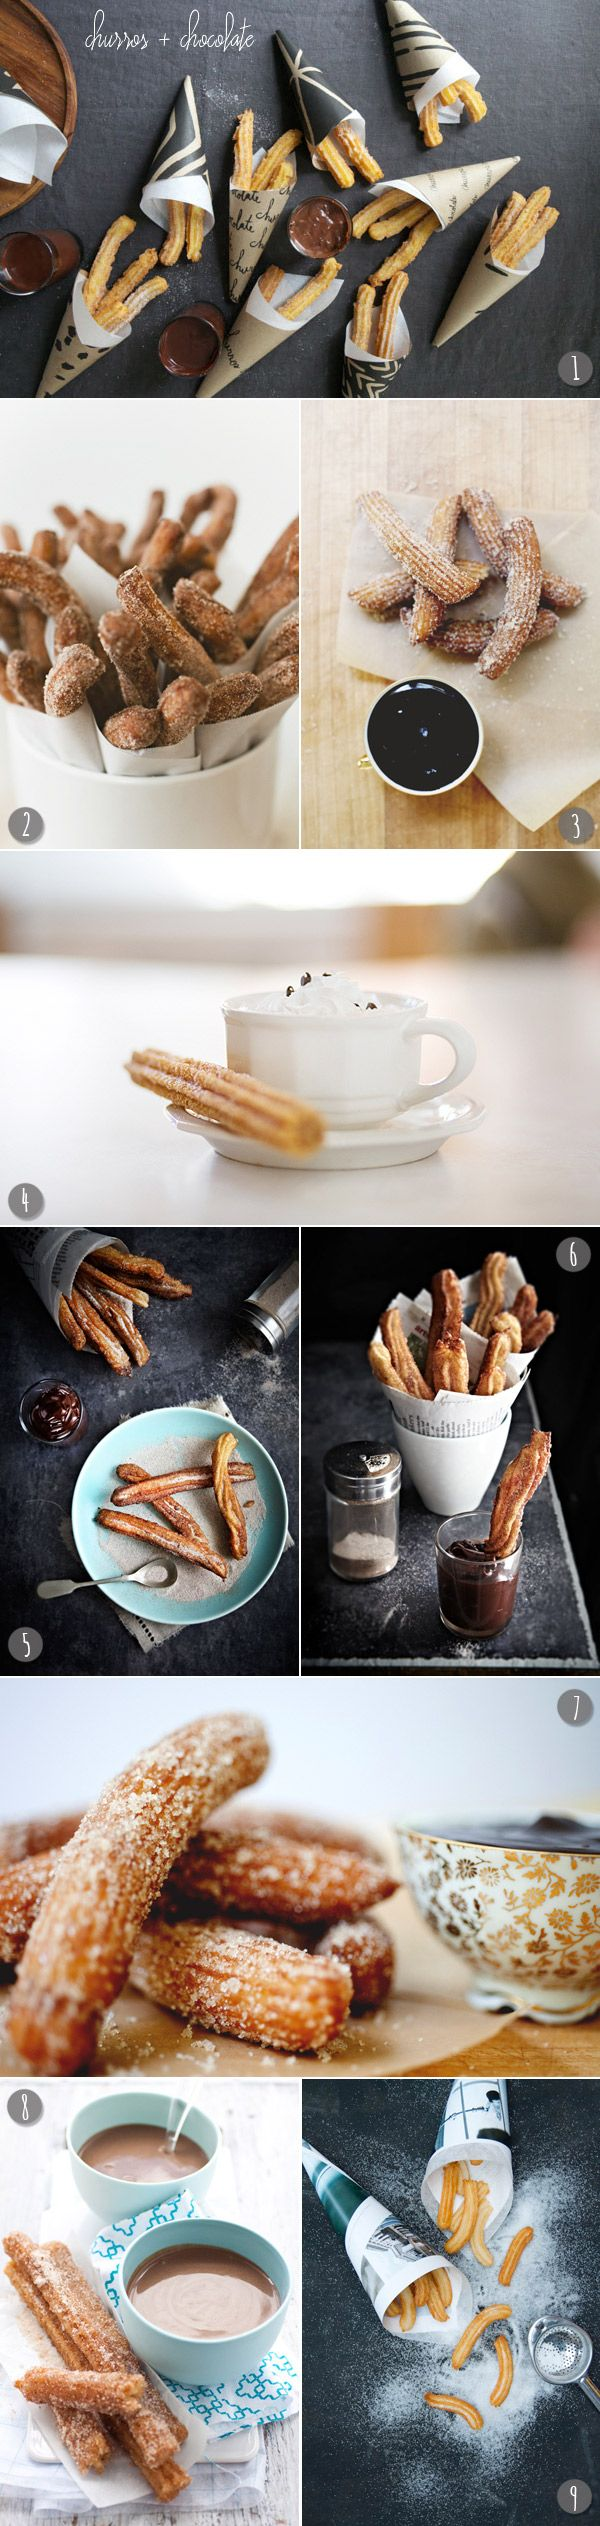 Churros + chocolate   The Sweetest Occasion